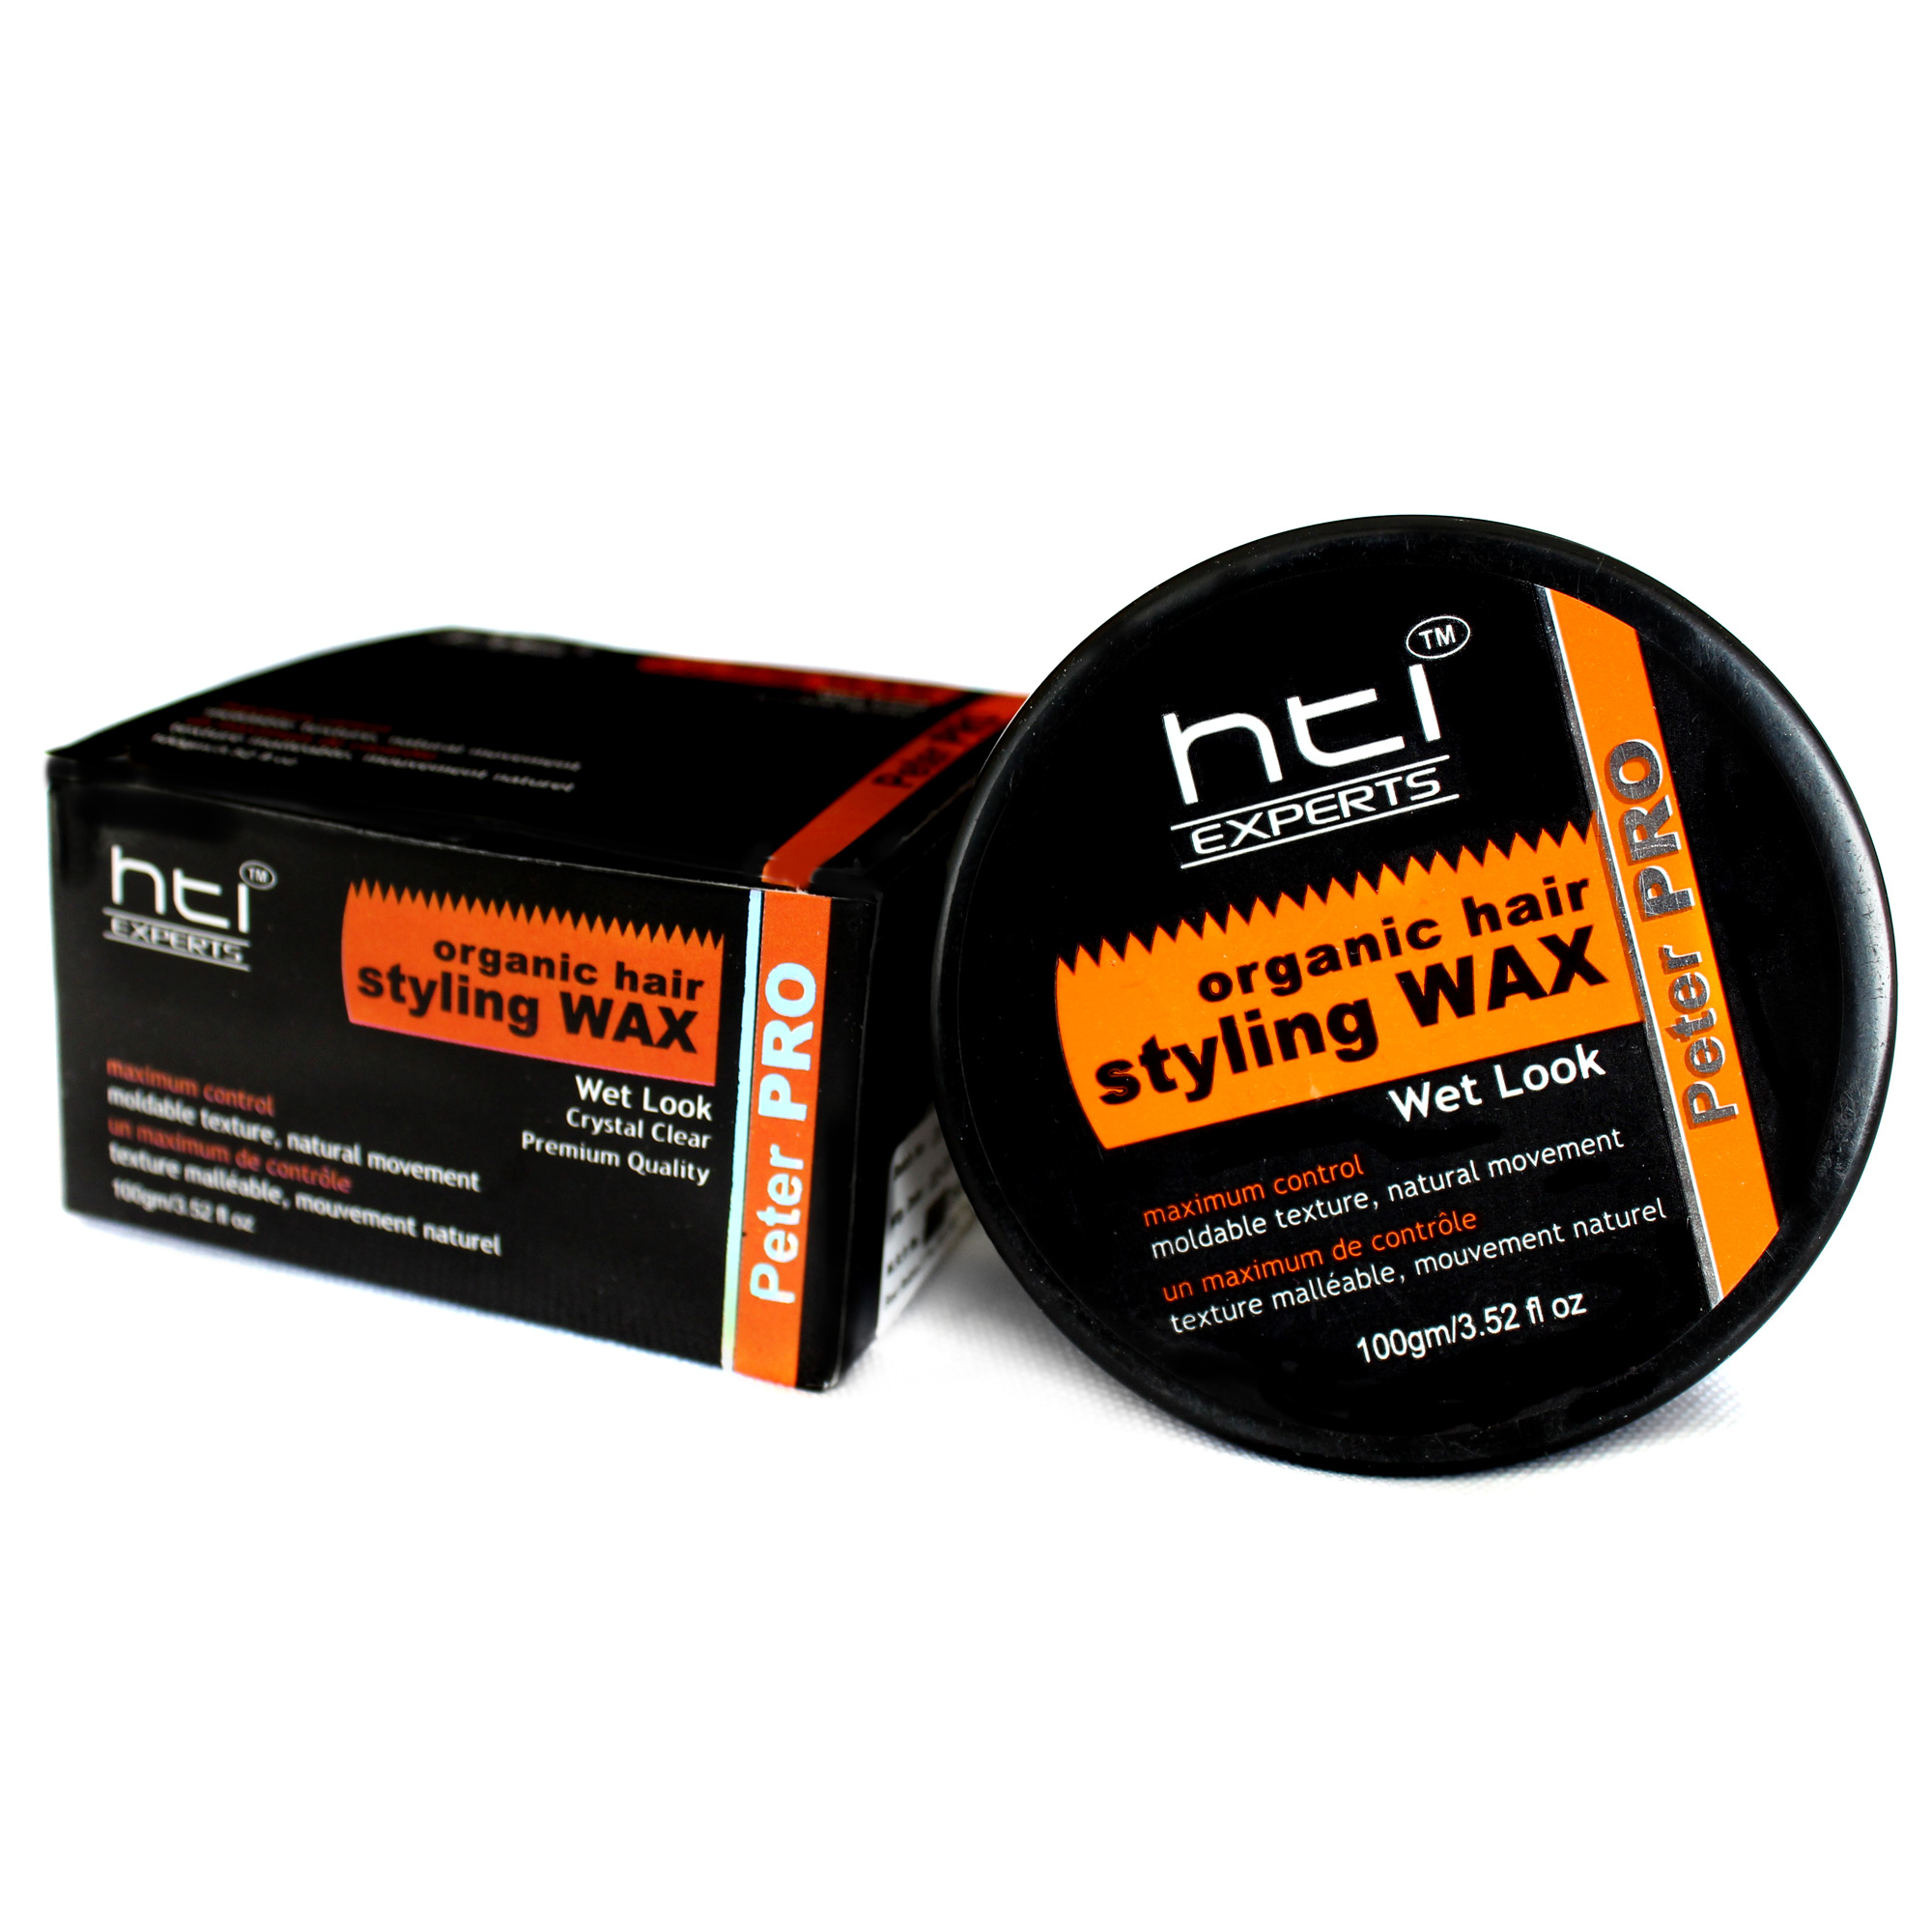 wax for hair styling organic hair styling wax look hti experts 2080